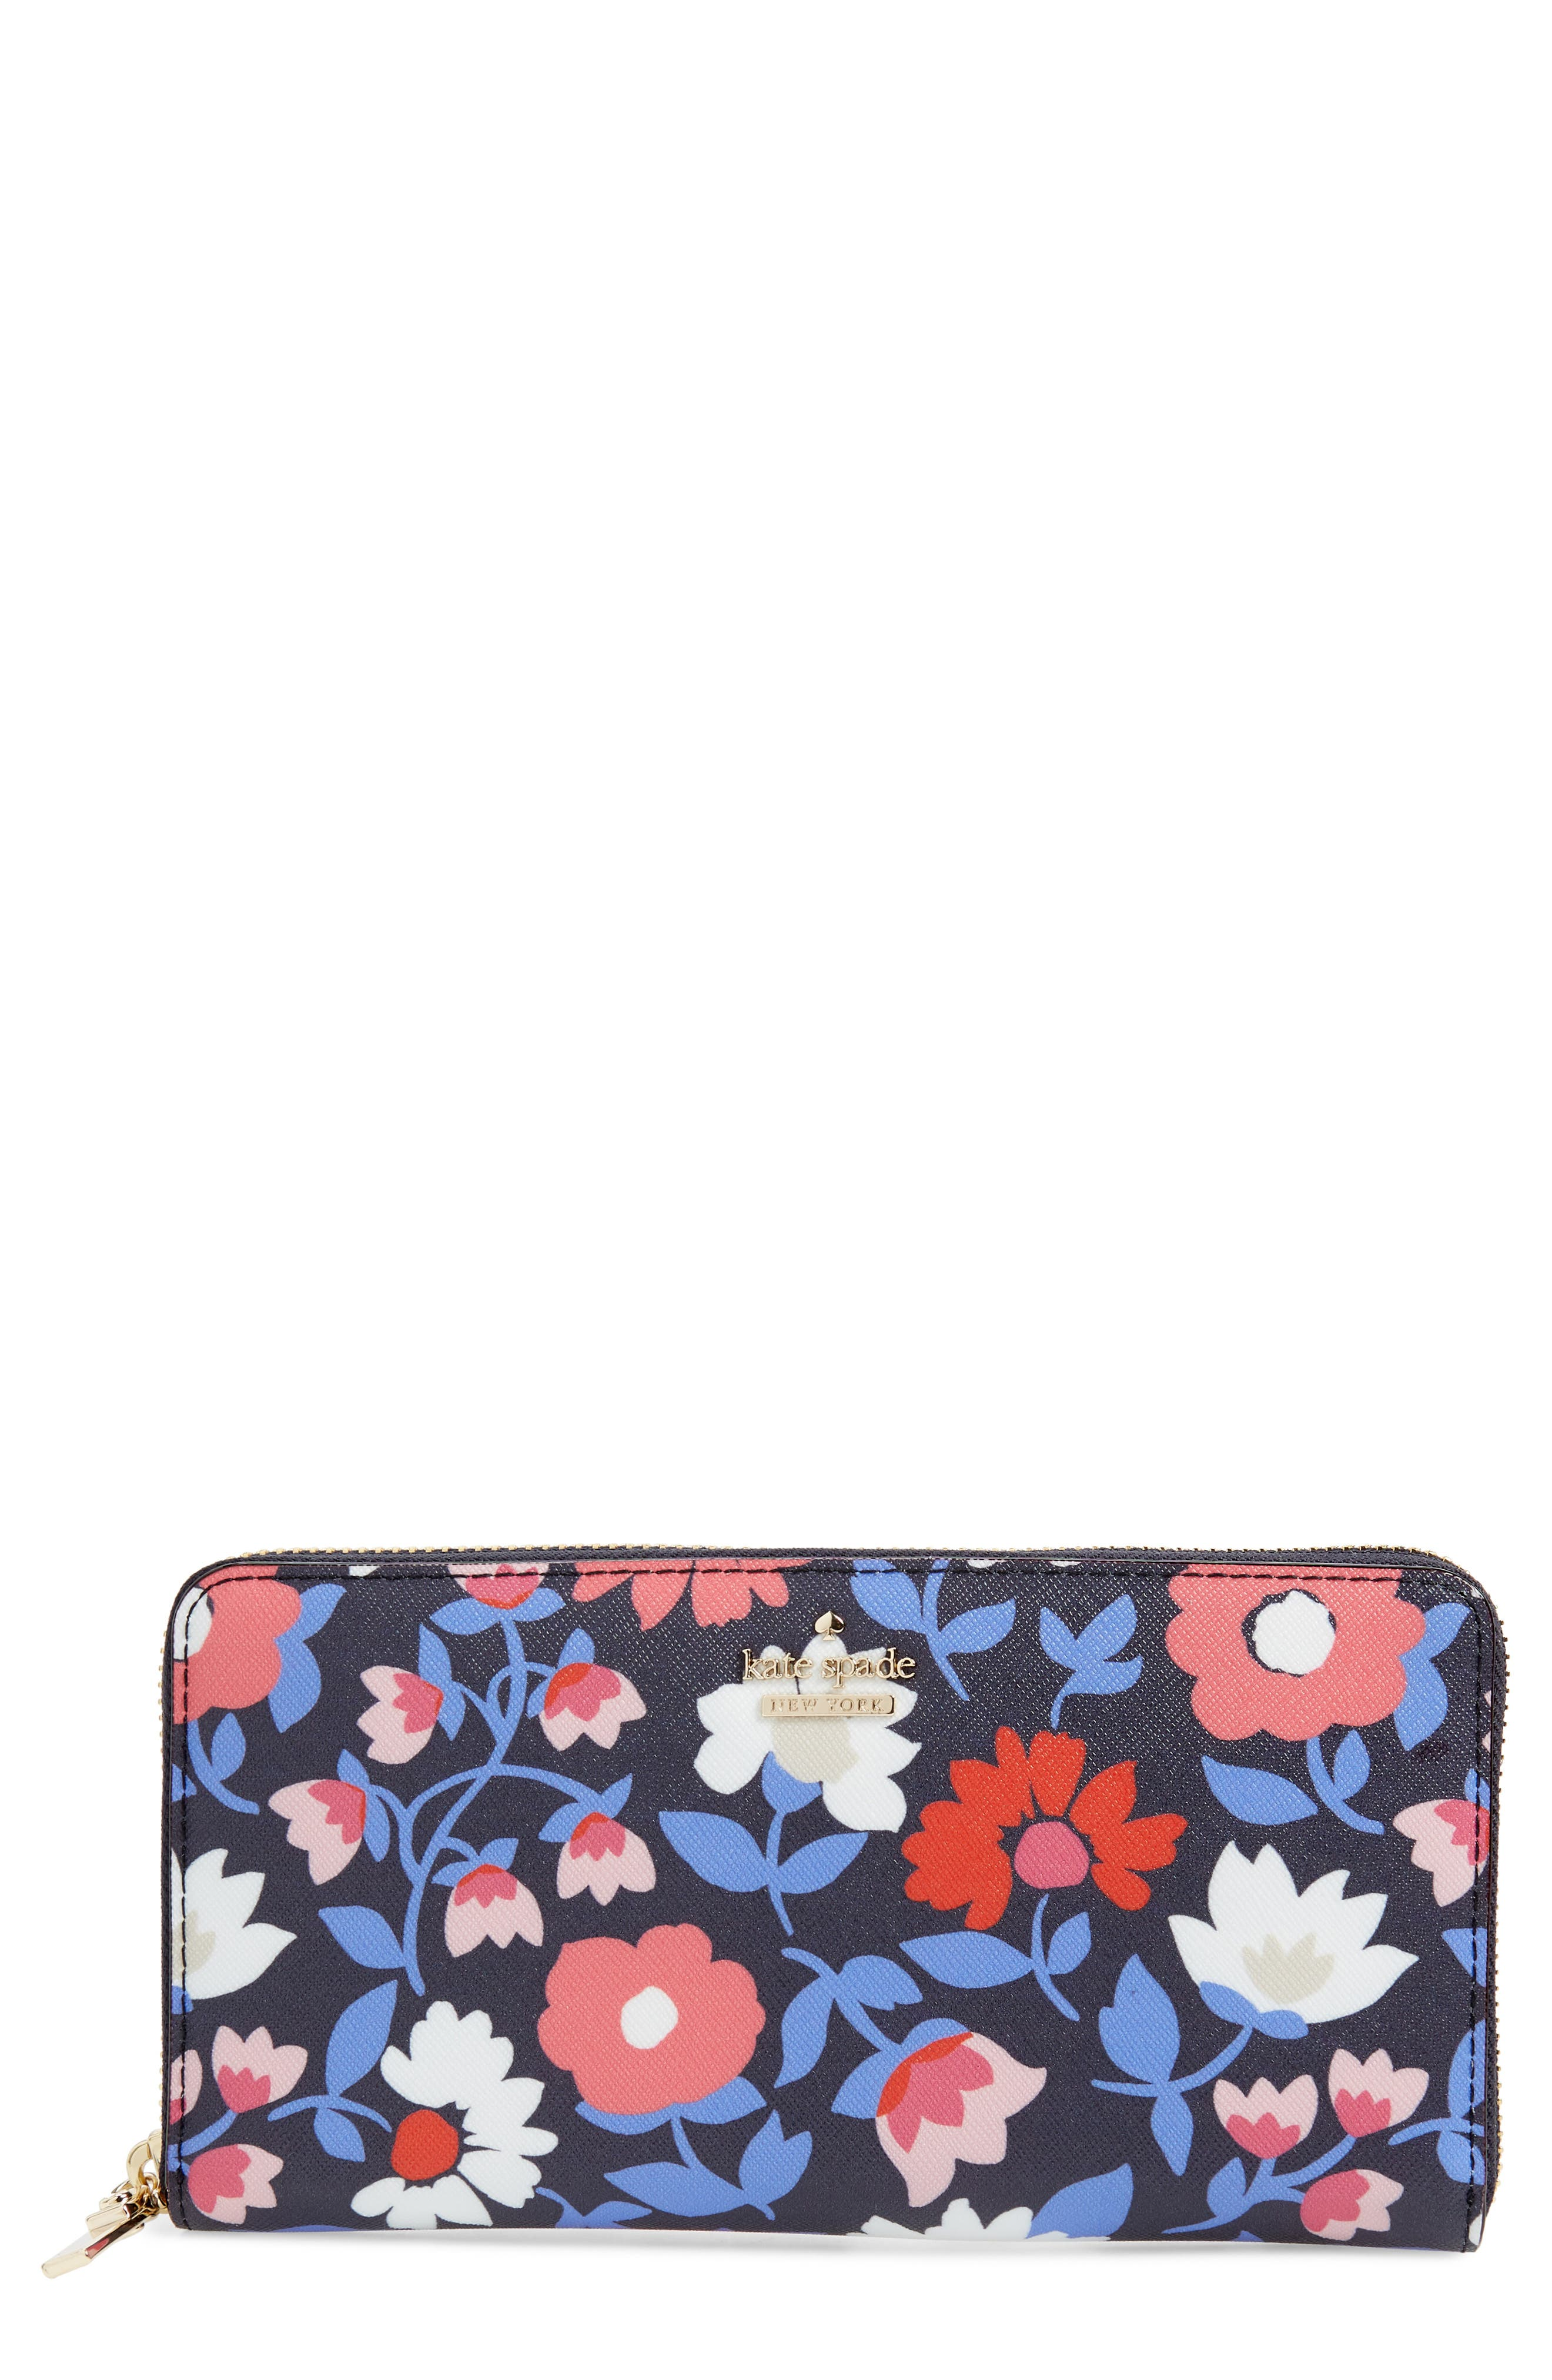 cameron street - daisy lacey zip around wallet,                         Main,                         color, 650